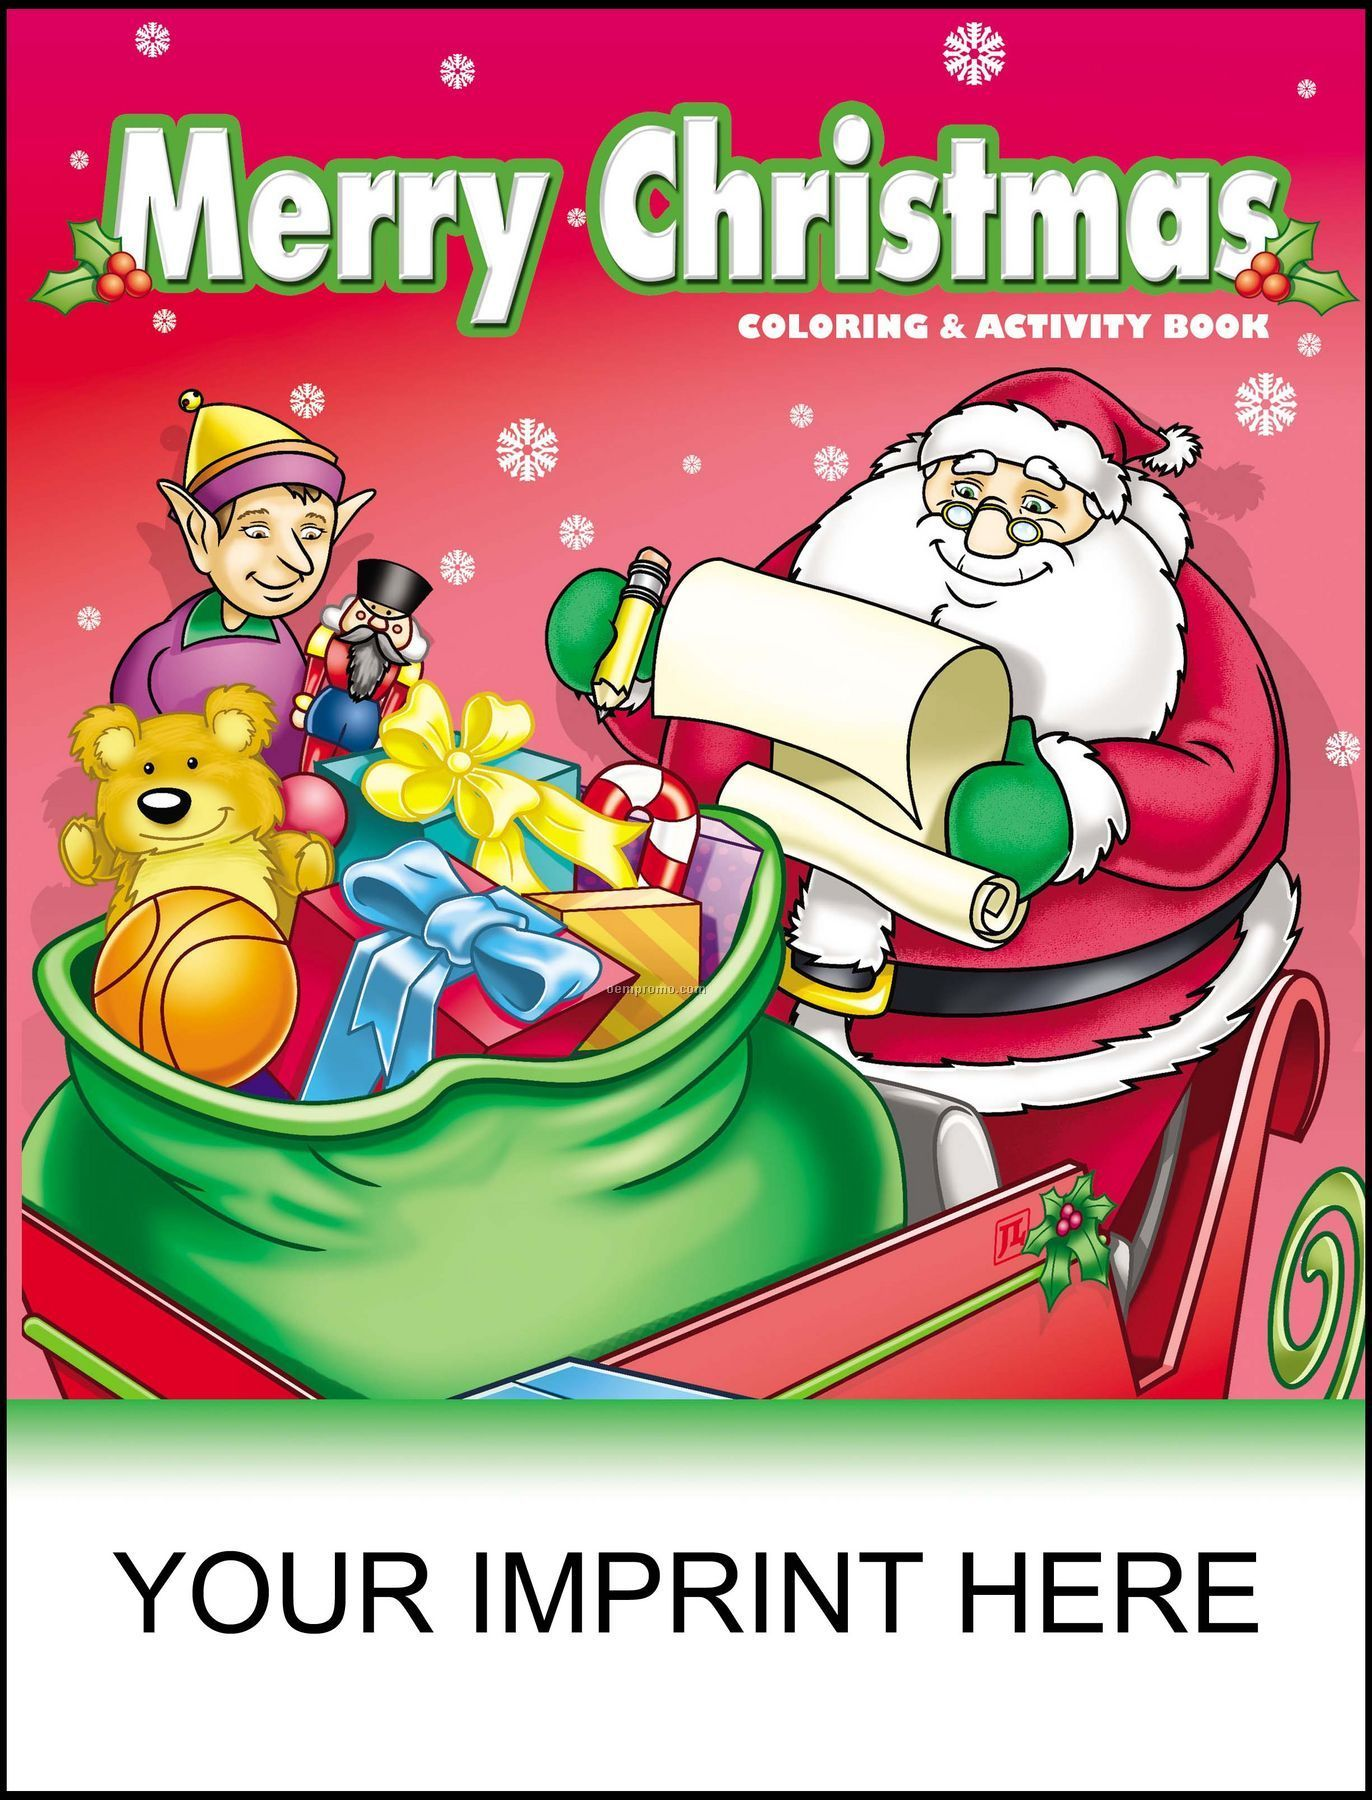 Christmas Coloring And Activity Books With Merry Book Santa Holding List China